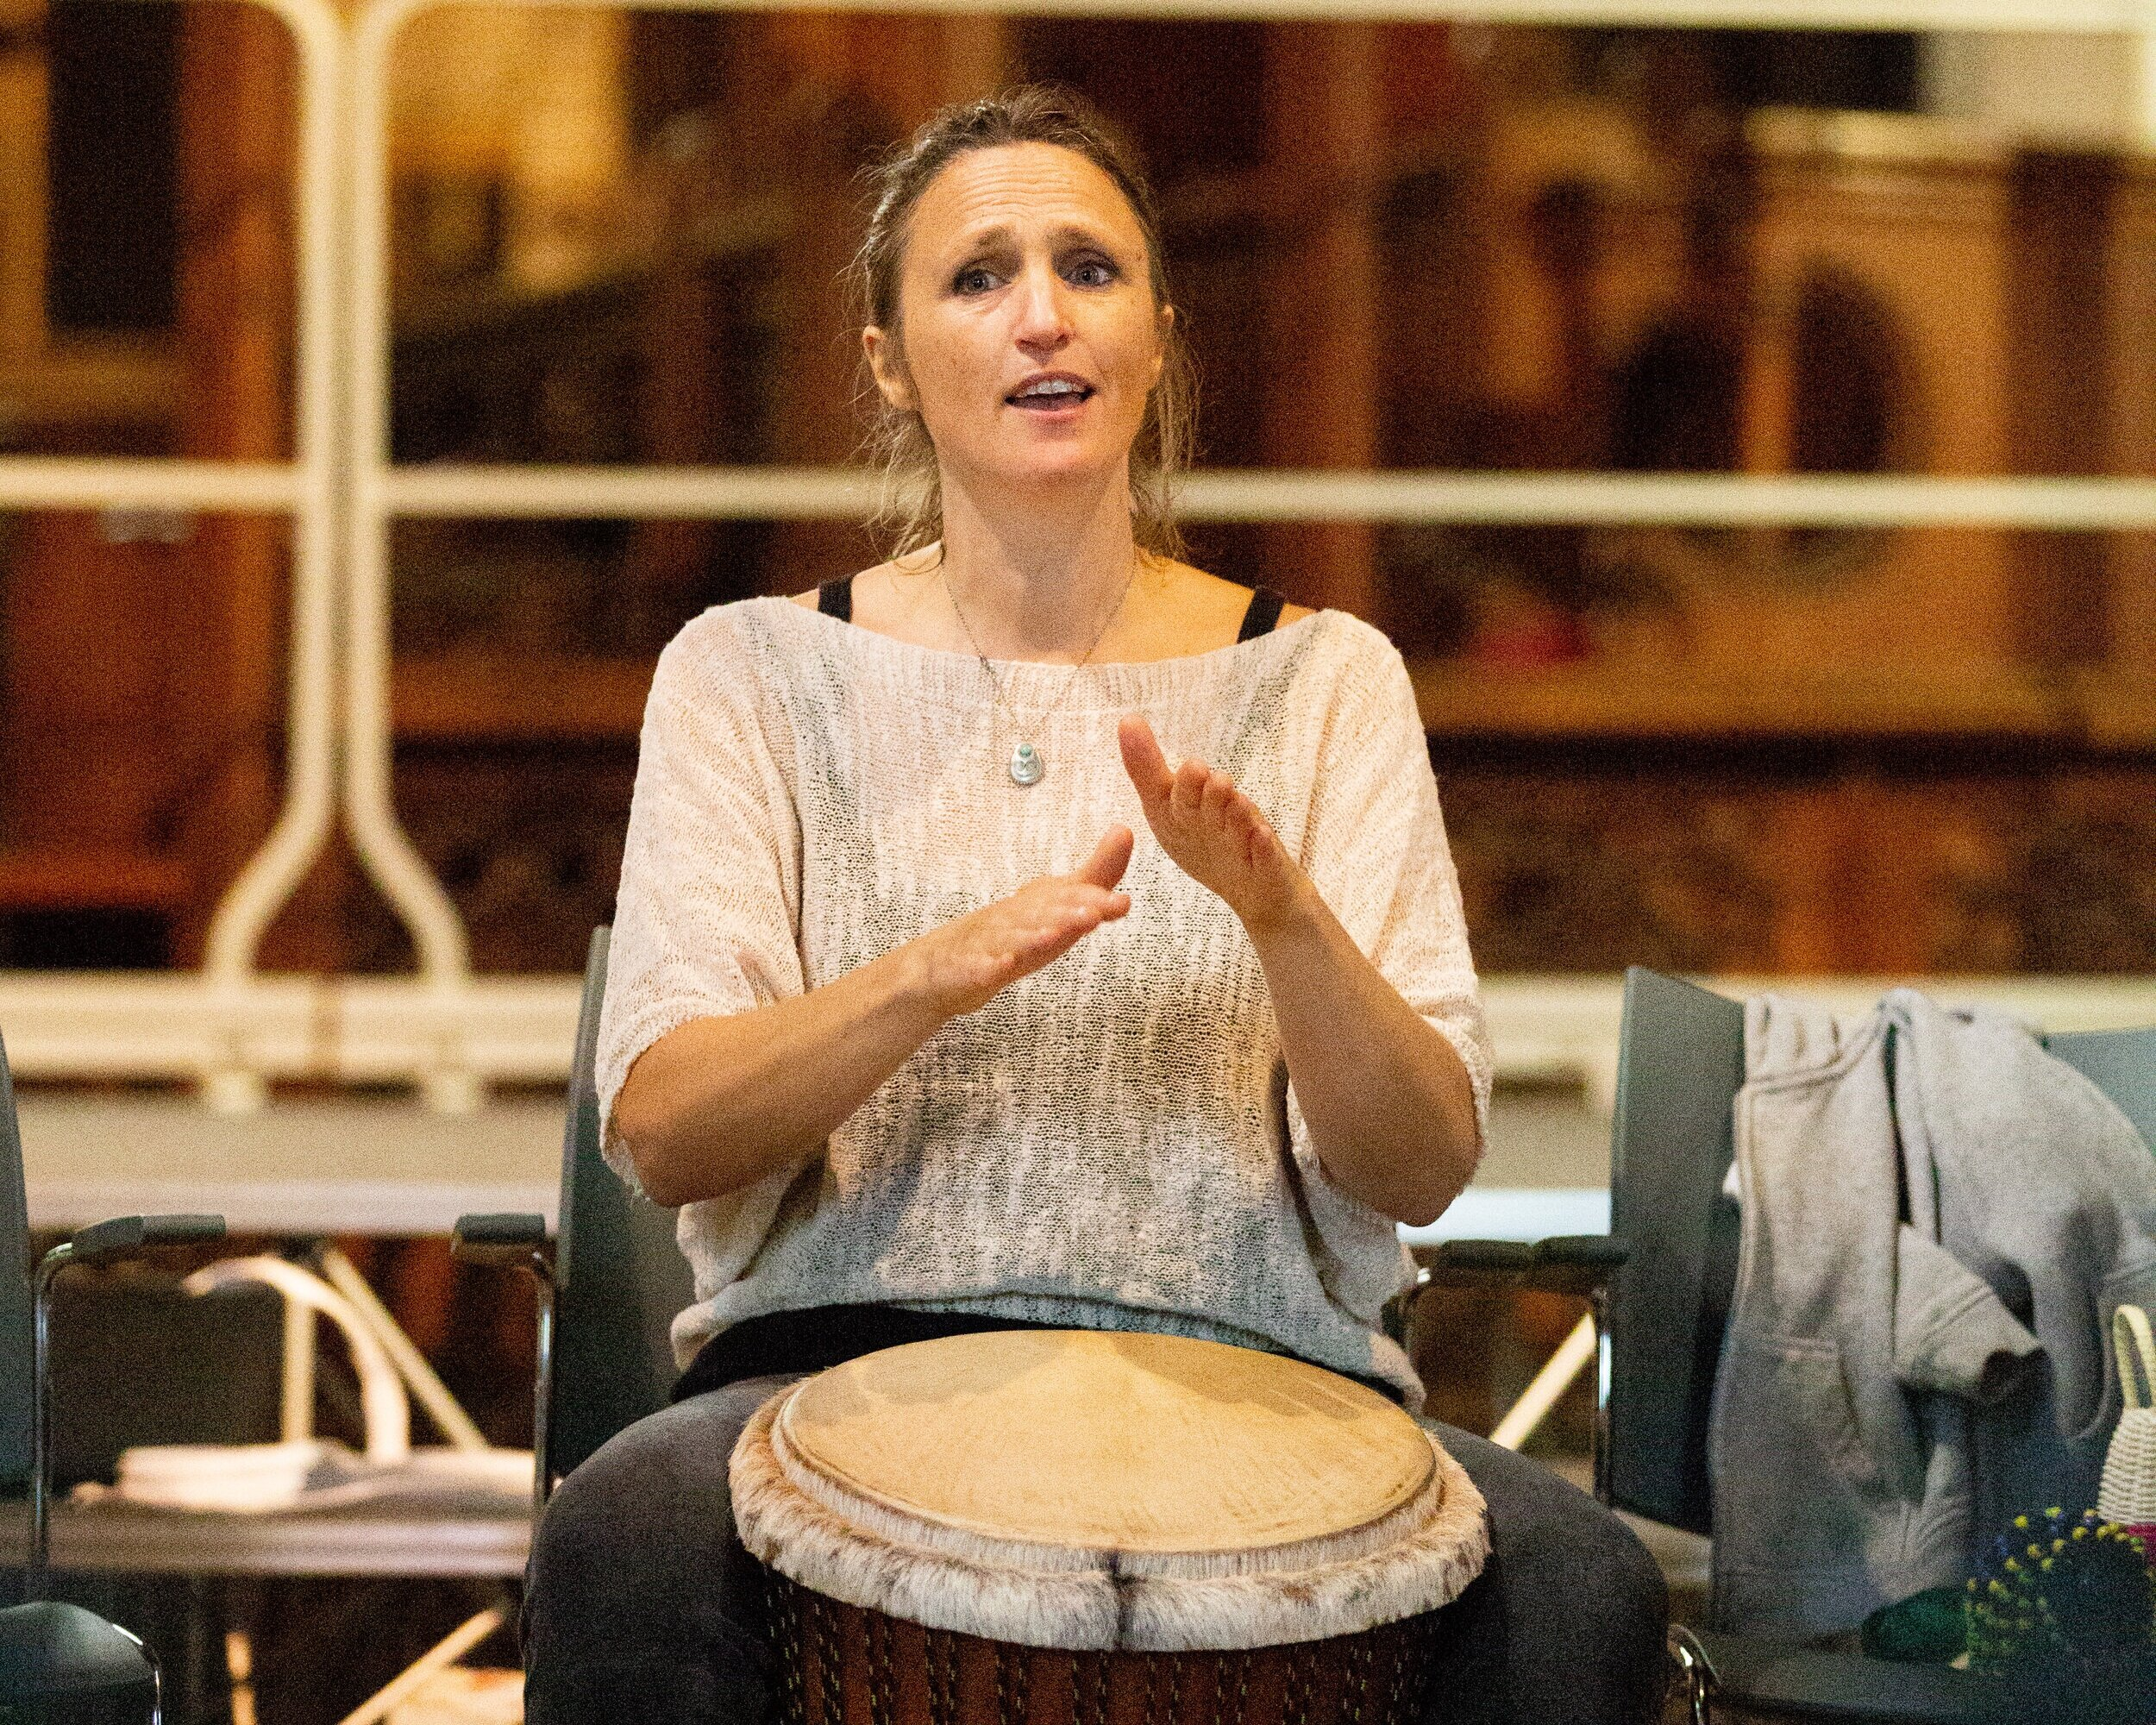 14:00 - 15:00 - All ages (child friendly) drumming workshop with Katie Harris. Witness the power of drum circle to build community, create connections and promote peace.CLICK FOR MORE INFORMATION >>